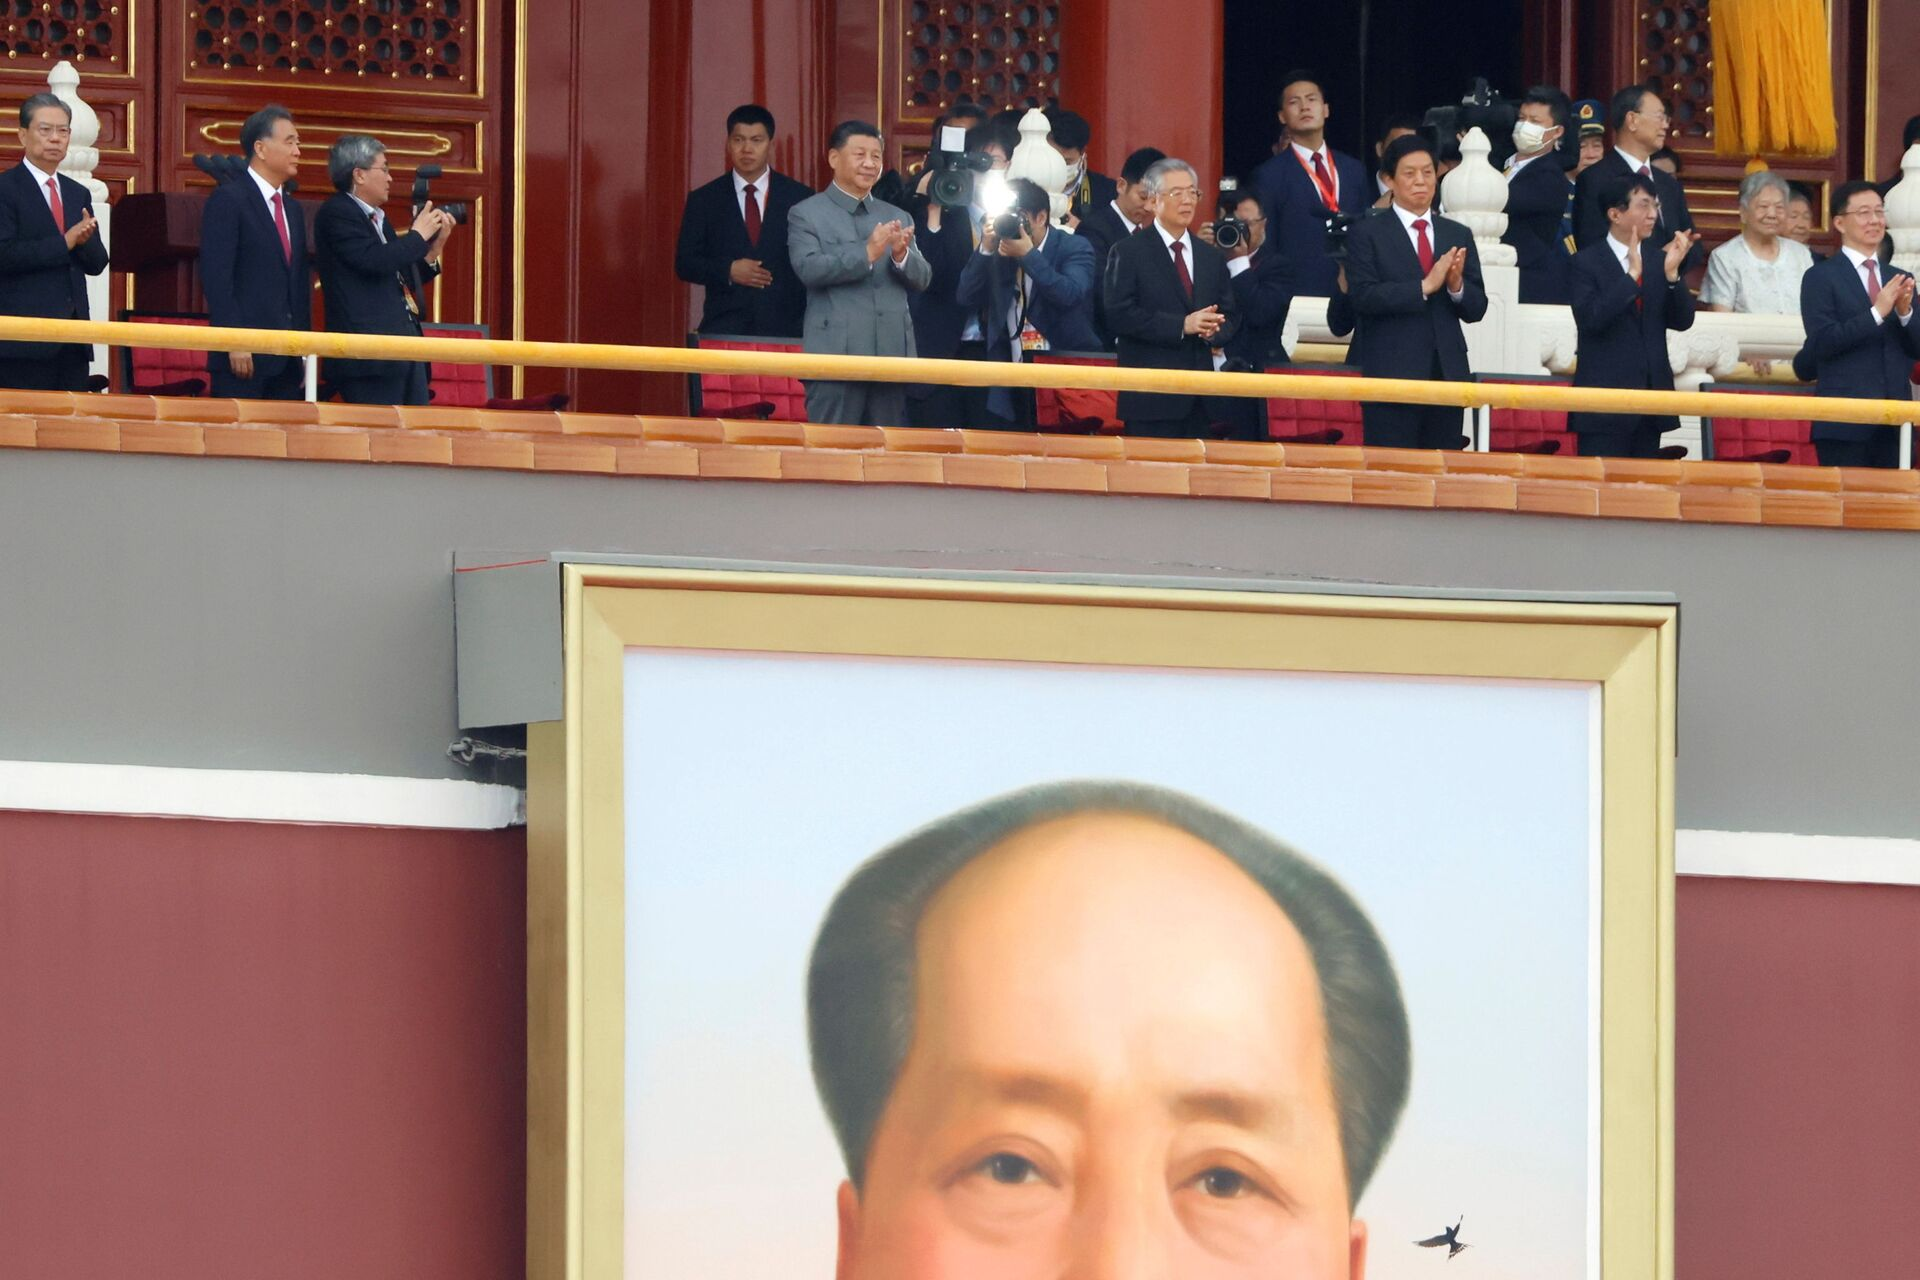 Chinese President Xi Jinping applauds above a giant portrait of late Chinese chairman Mao Zedong at the event marking the 100th founding anniversary of the Communist Party of China, on Tiananmen Square in Beijing, China 1 July 2021.  - Sputnik International, 1920, 07.09.2021